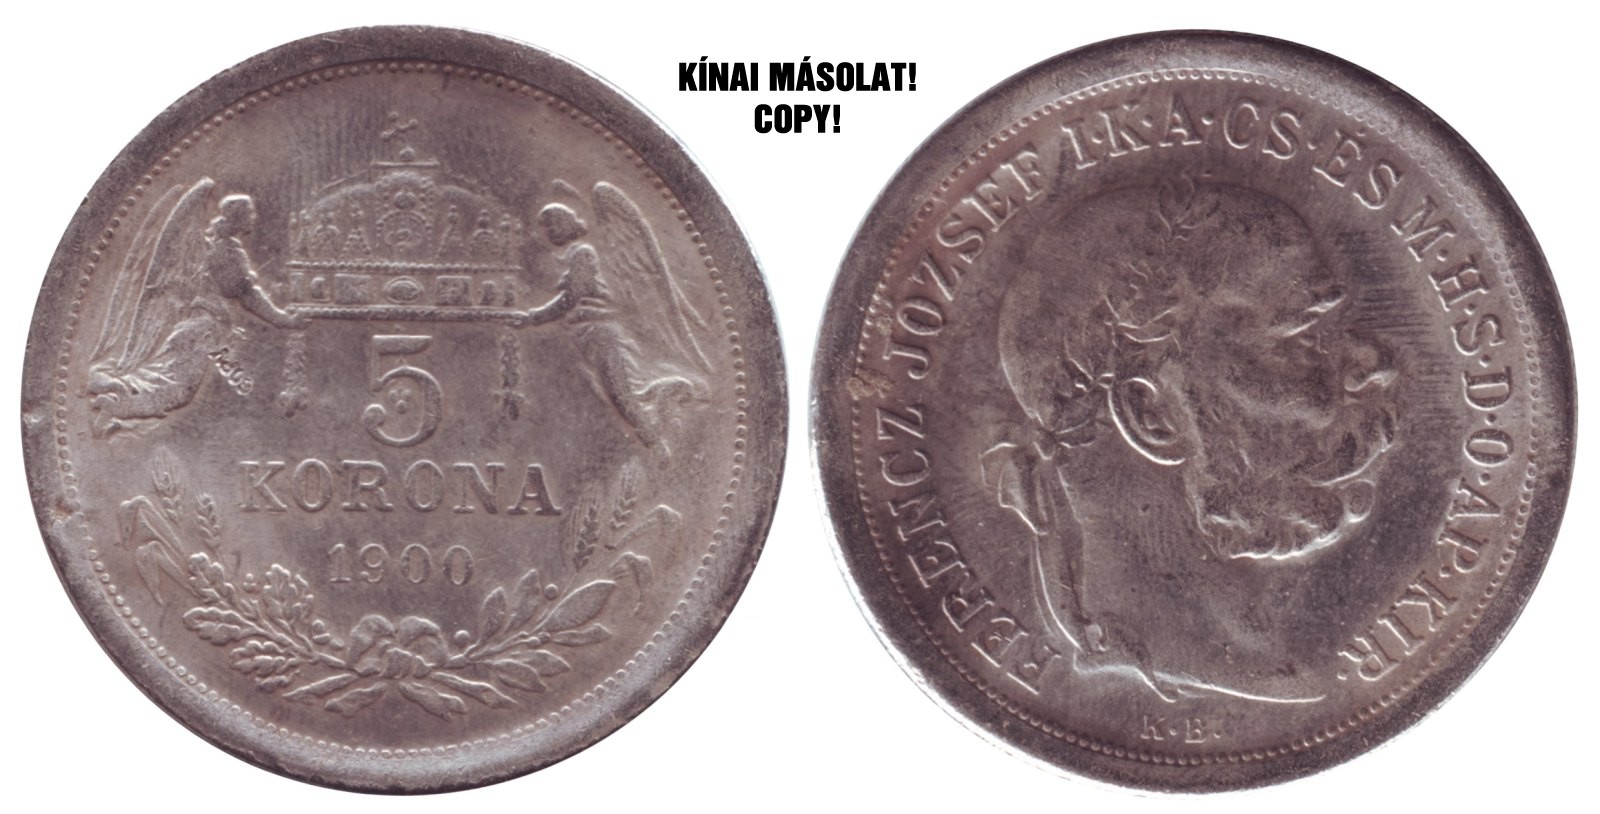 http://www.koronaportal.hu/hirek/1900-as-5-korona-reces-peremu-vas-masolata-kinabol-copy-replika-hamis/1900-as-5-korona-reces-peremu-vas-masolata-kinabol-copy-replika-hamis.jpg